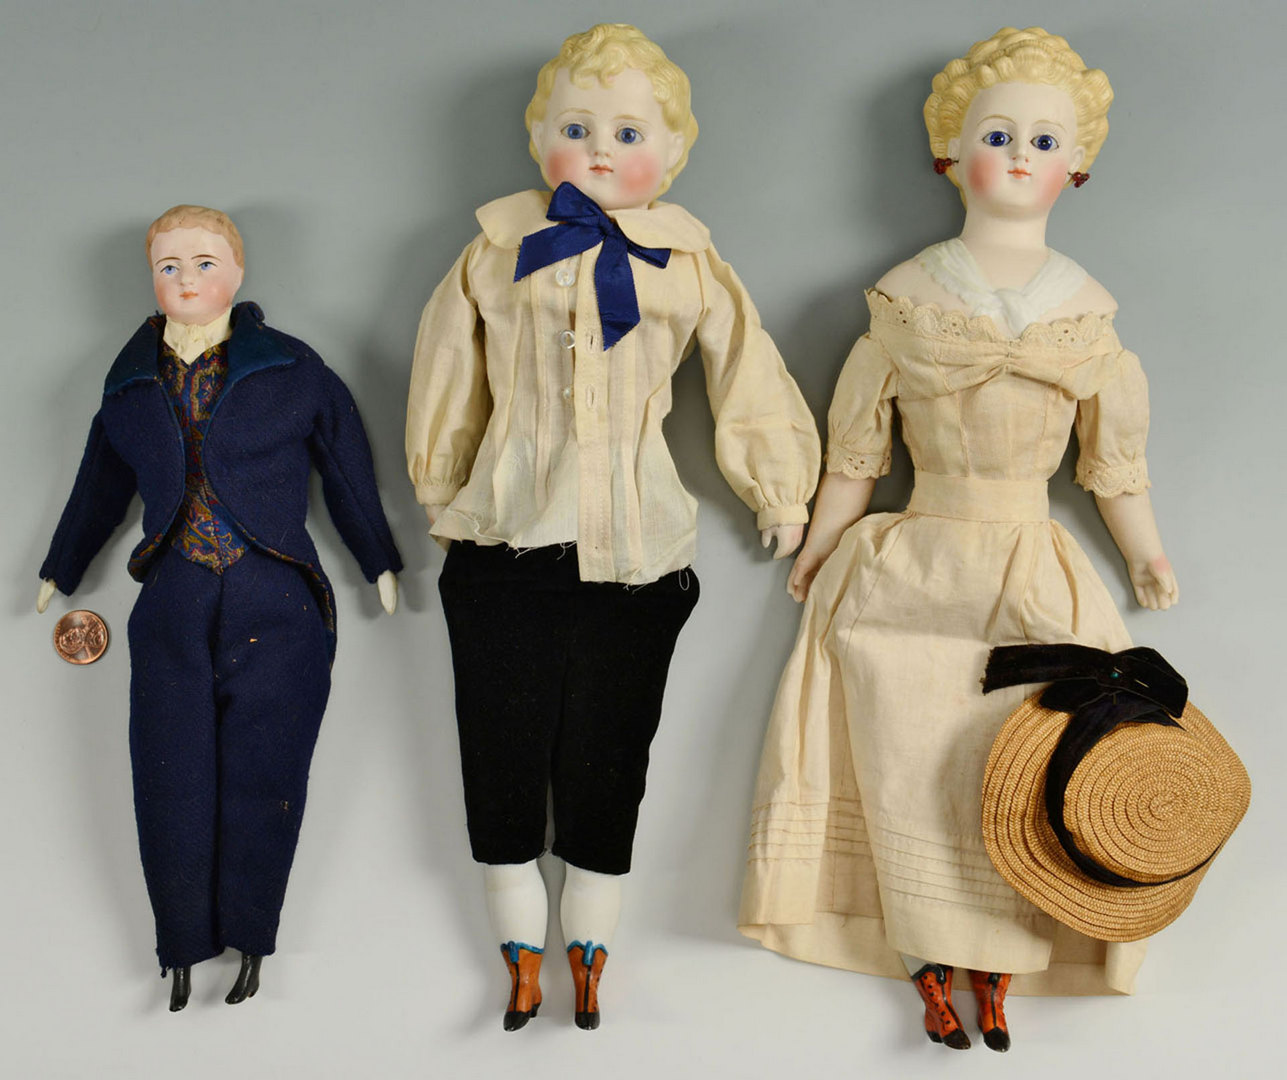 Lot 654: 3 Bisque Fashion Dolls